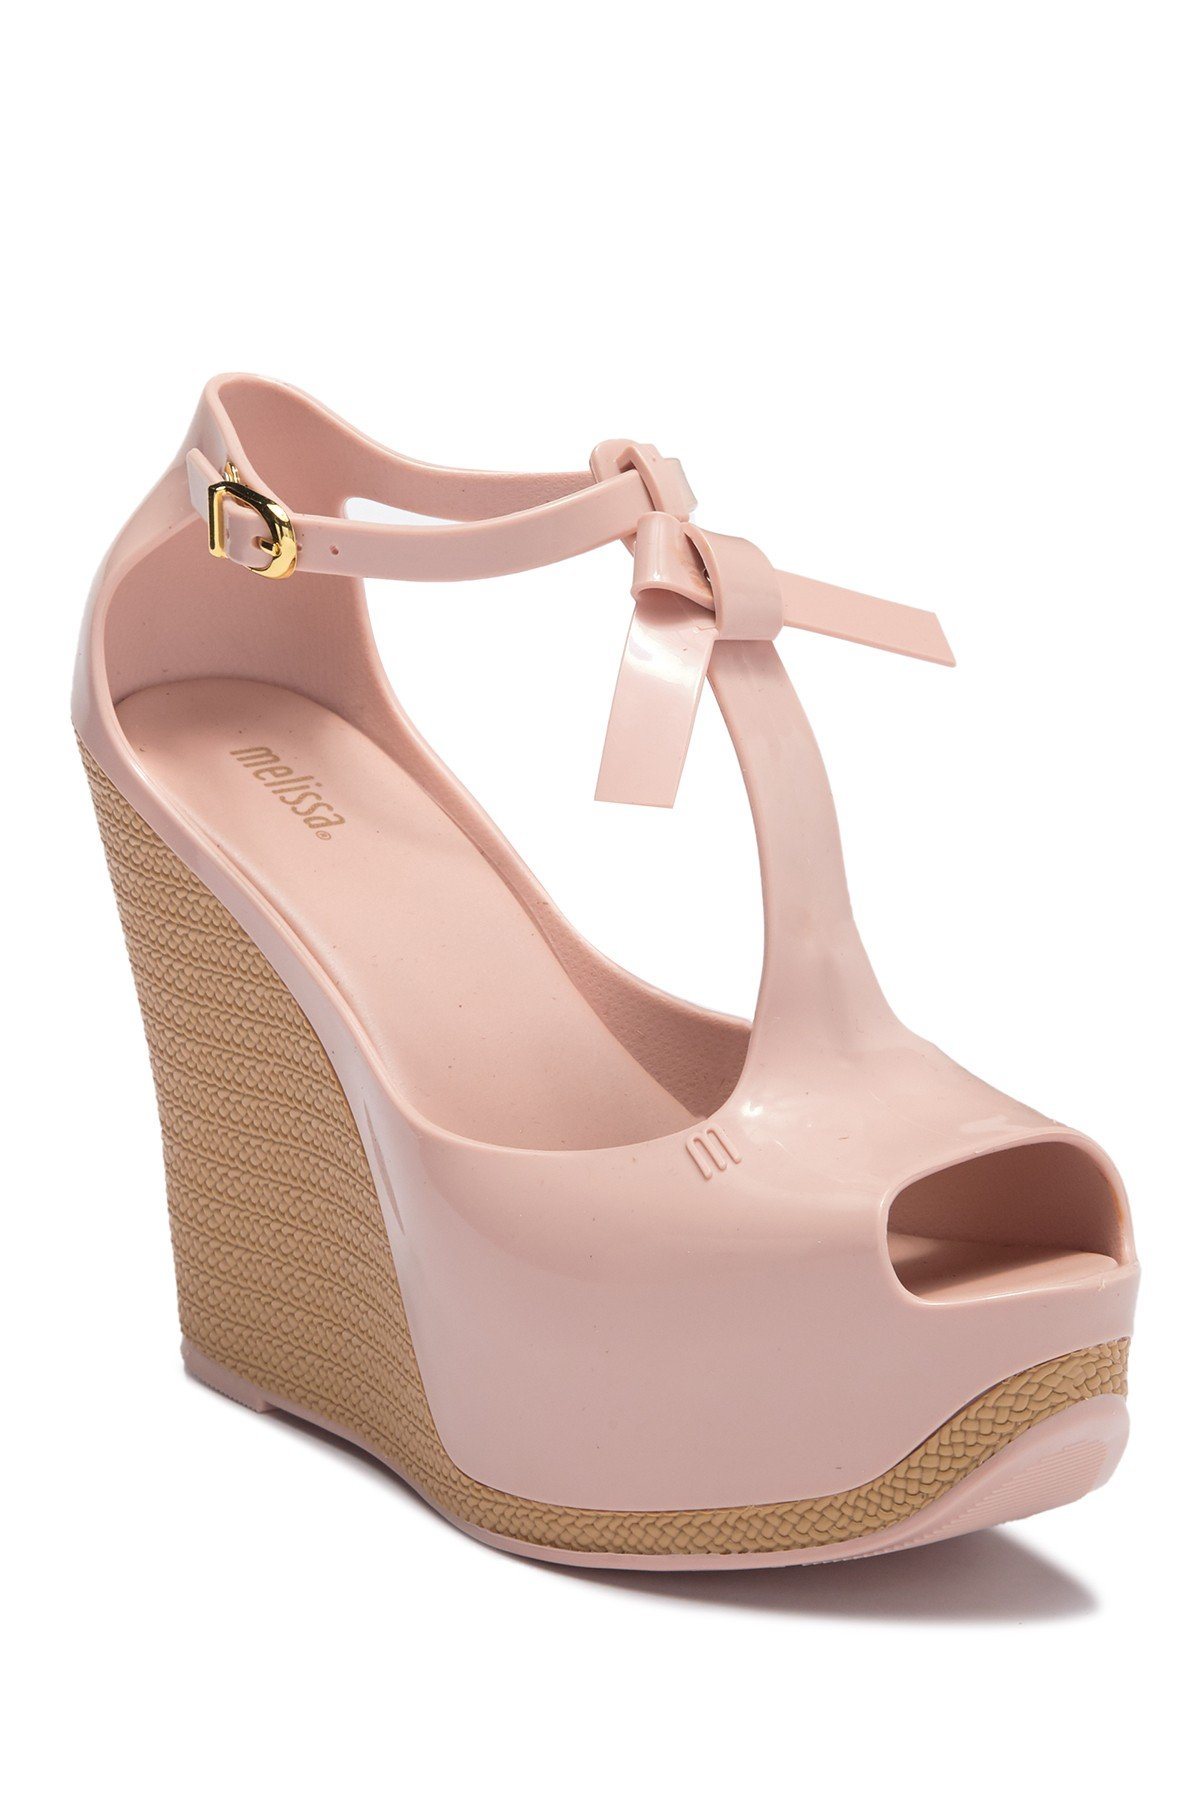 Wedge Sandals melissa - peace vi jelly wedge ALTEDIP